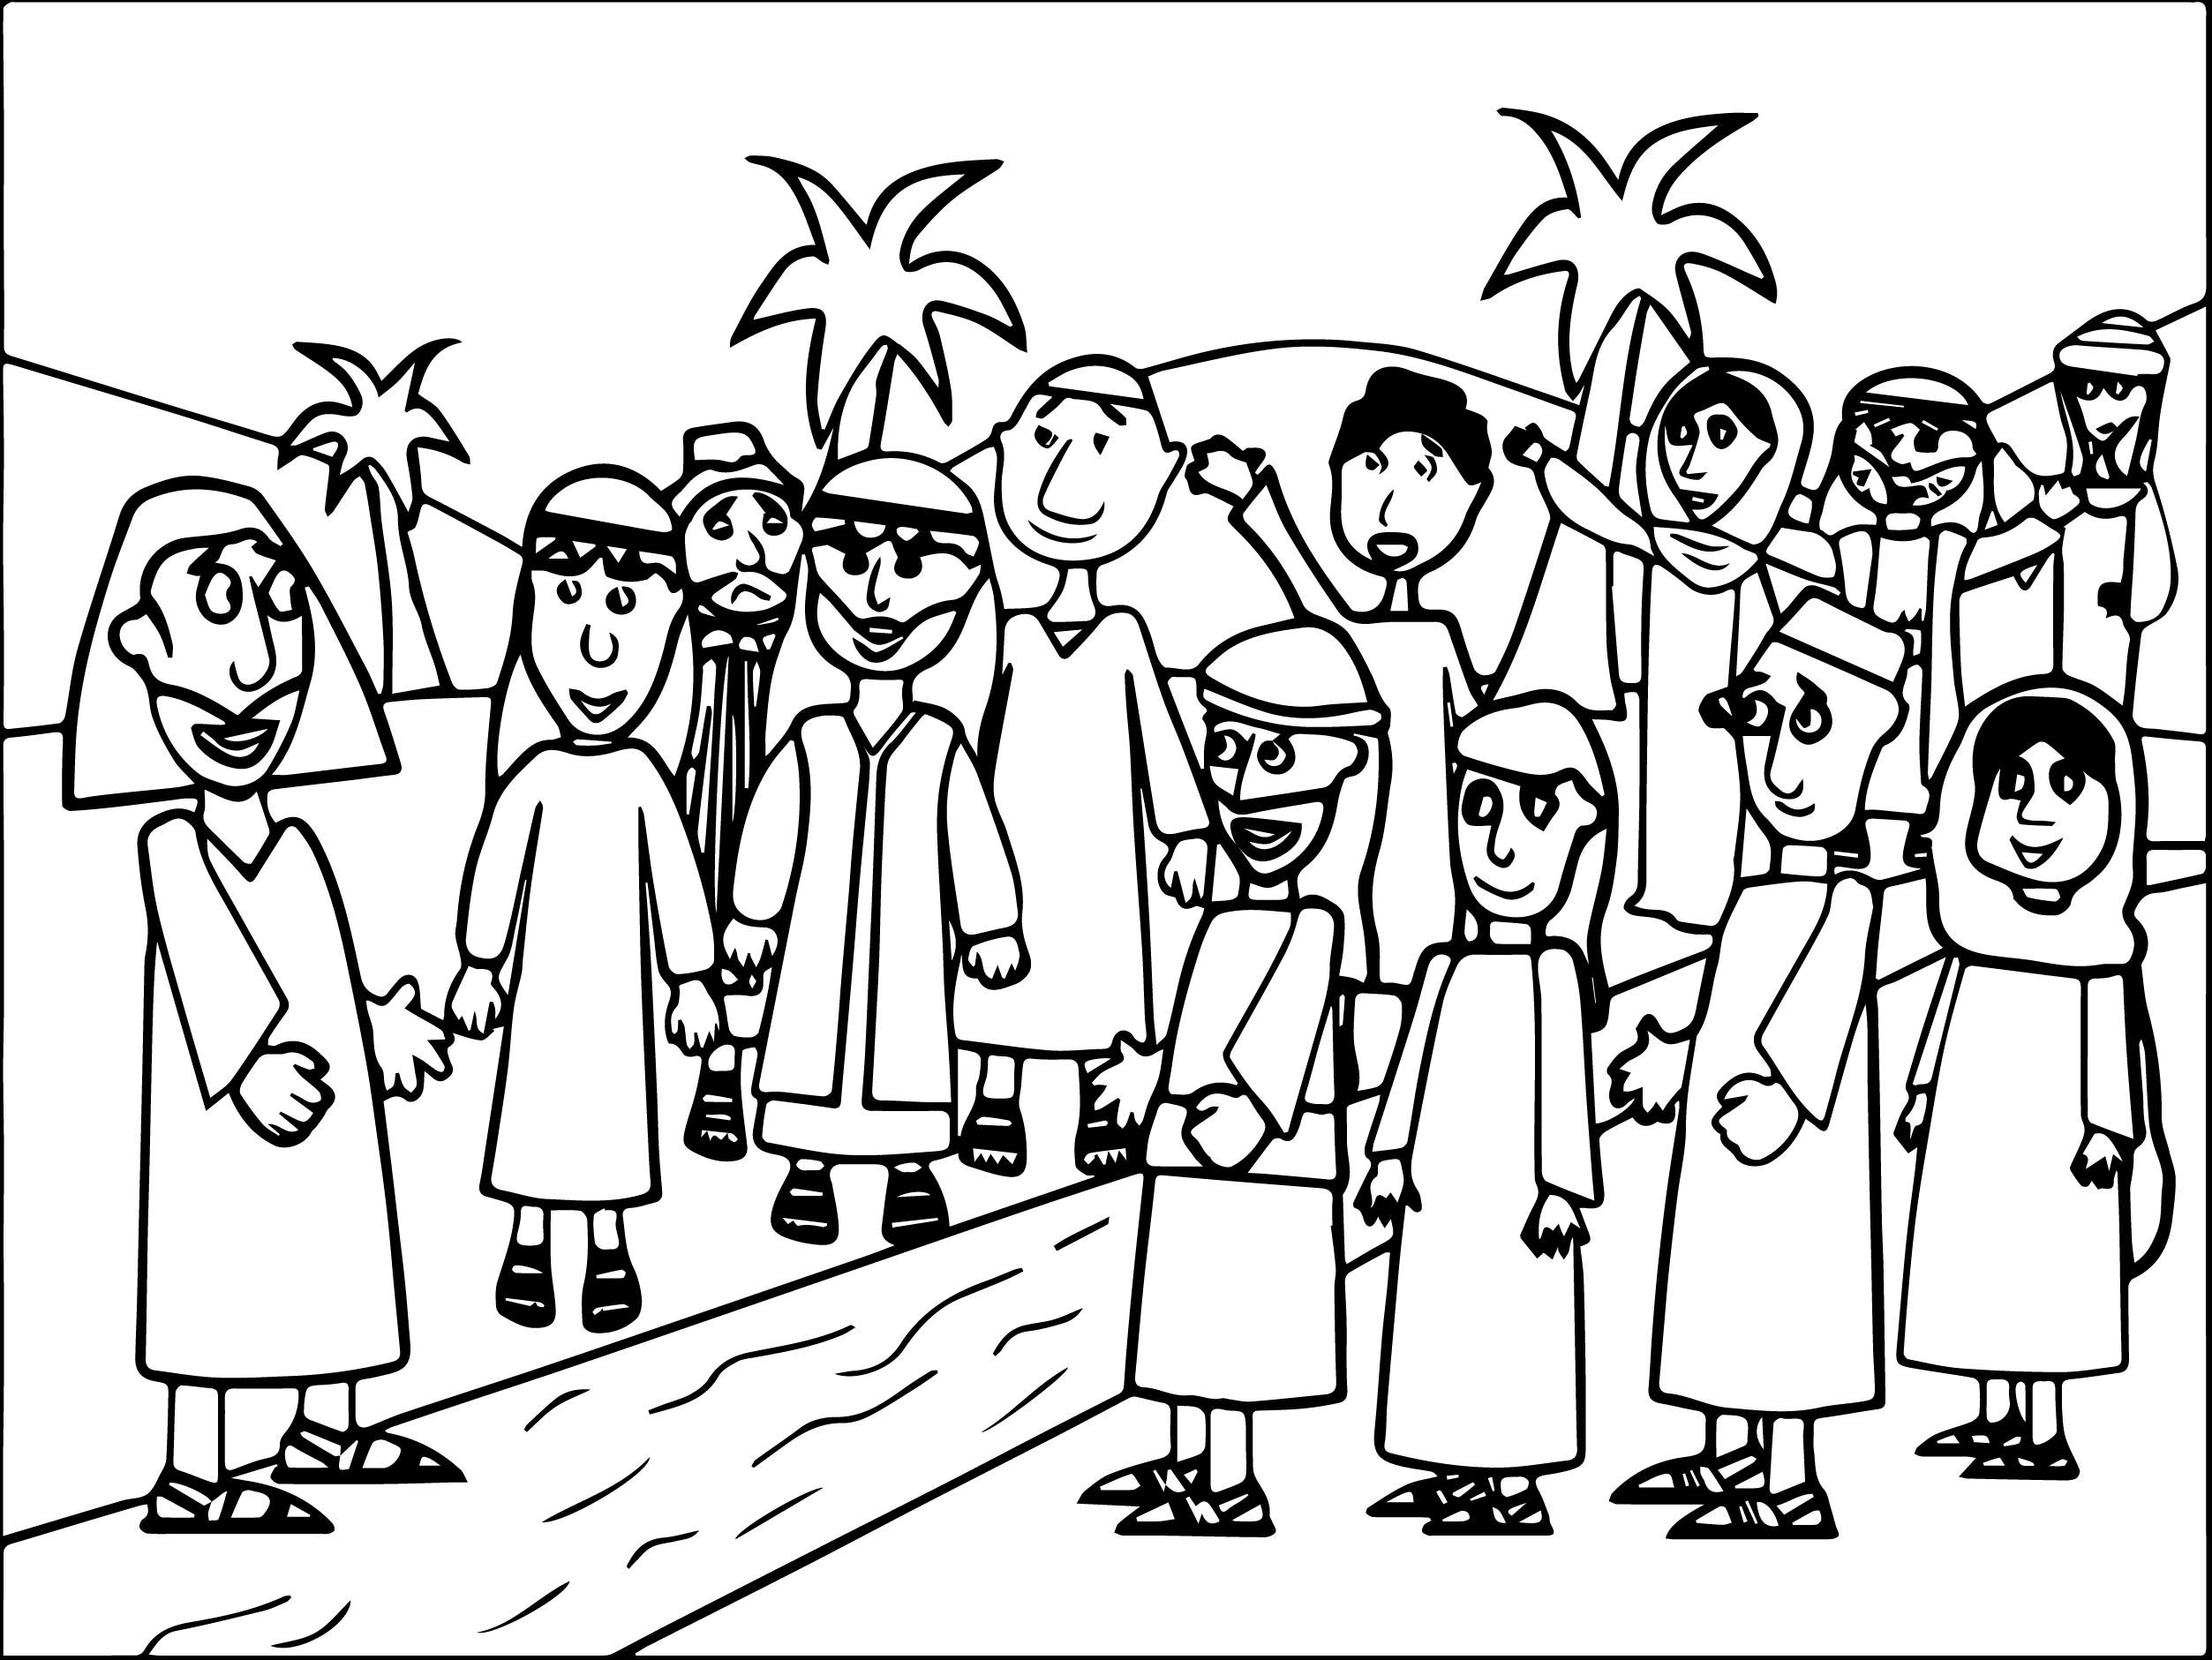 Jesus As A Child Sunday School Coloring Pages Your Kids Are Going